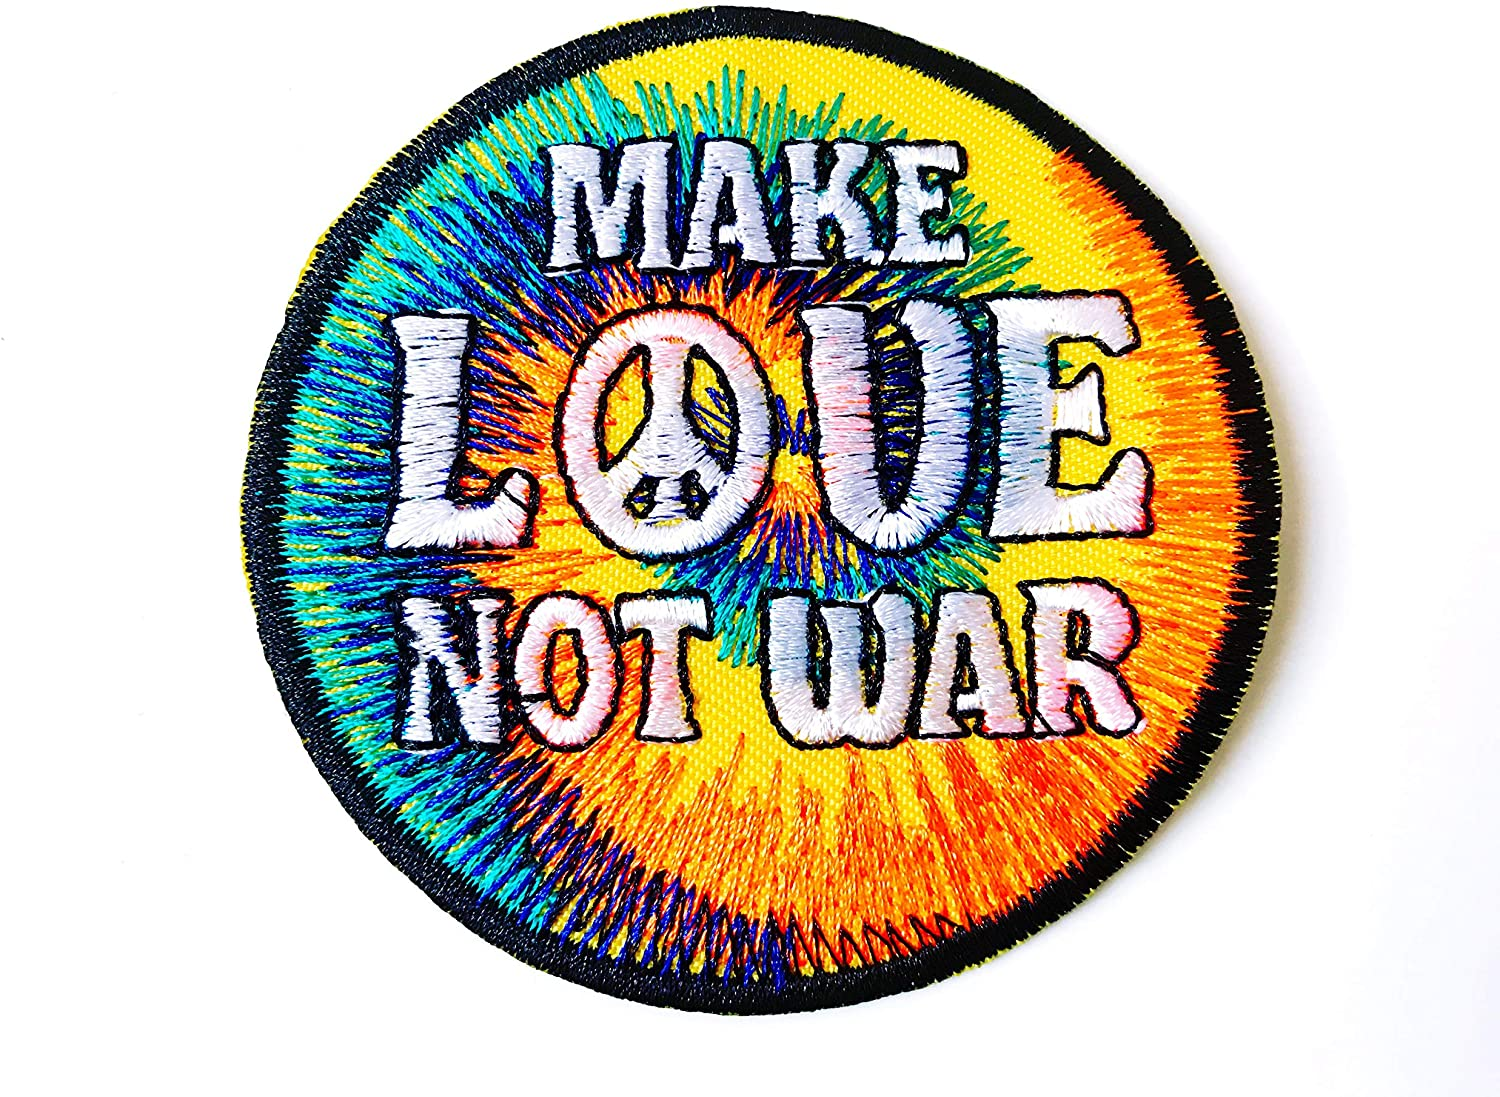 TH Make Love Not War Peace Symbol Biker Rider Motorcycle Logo Applique Embroidered Sew on Iron on Patch for Backpacks Jeans Jackets Clothing etc.